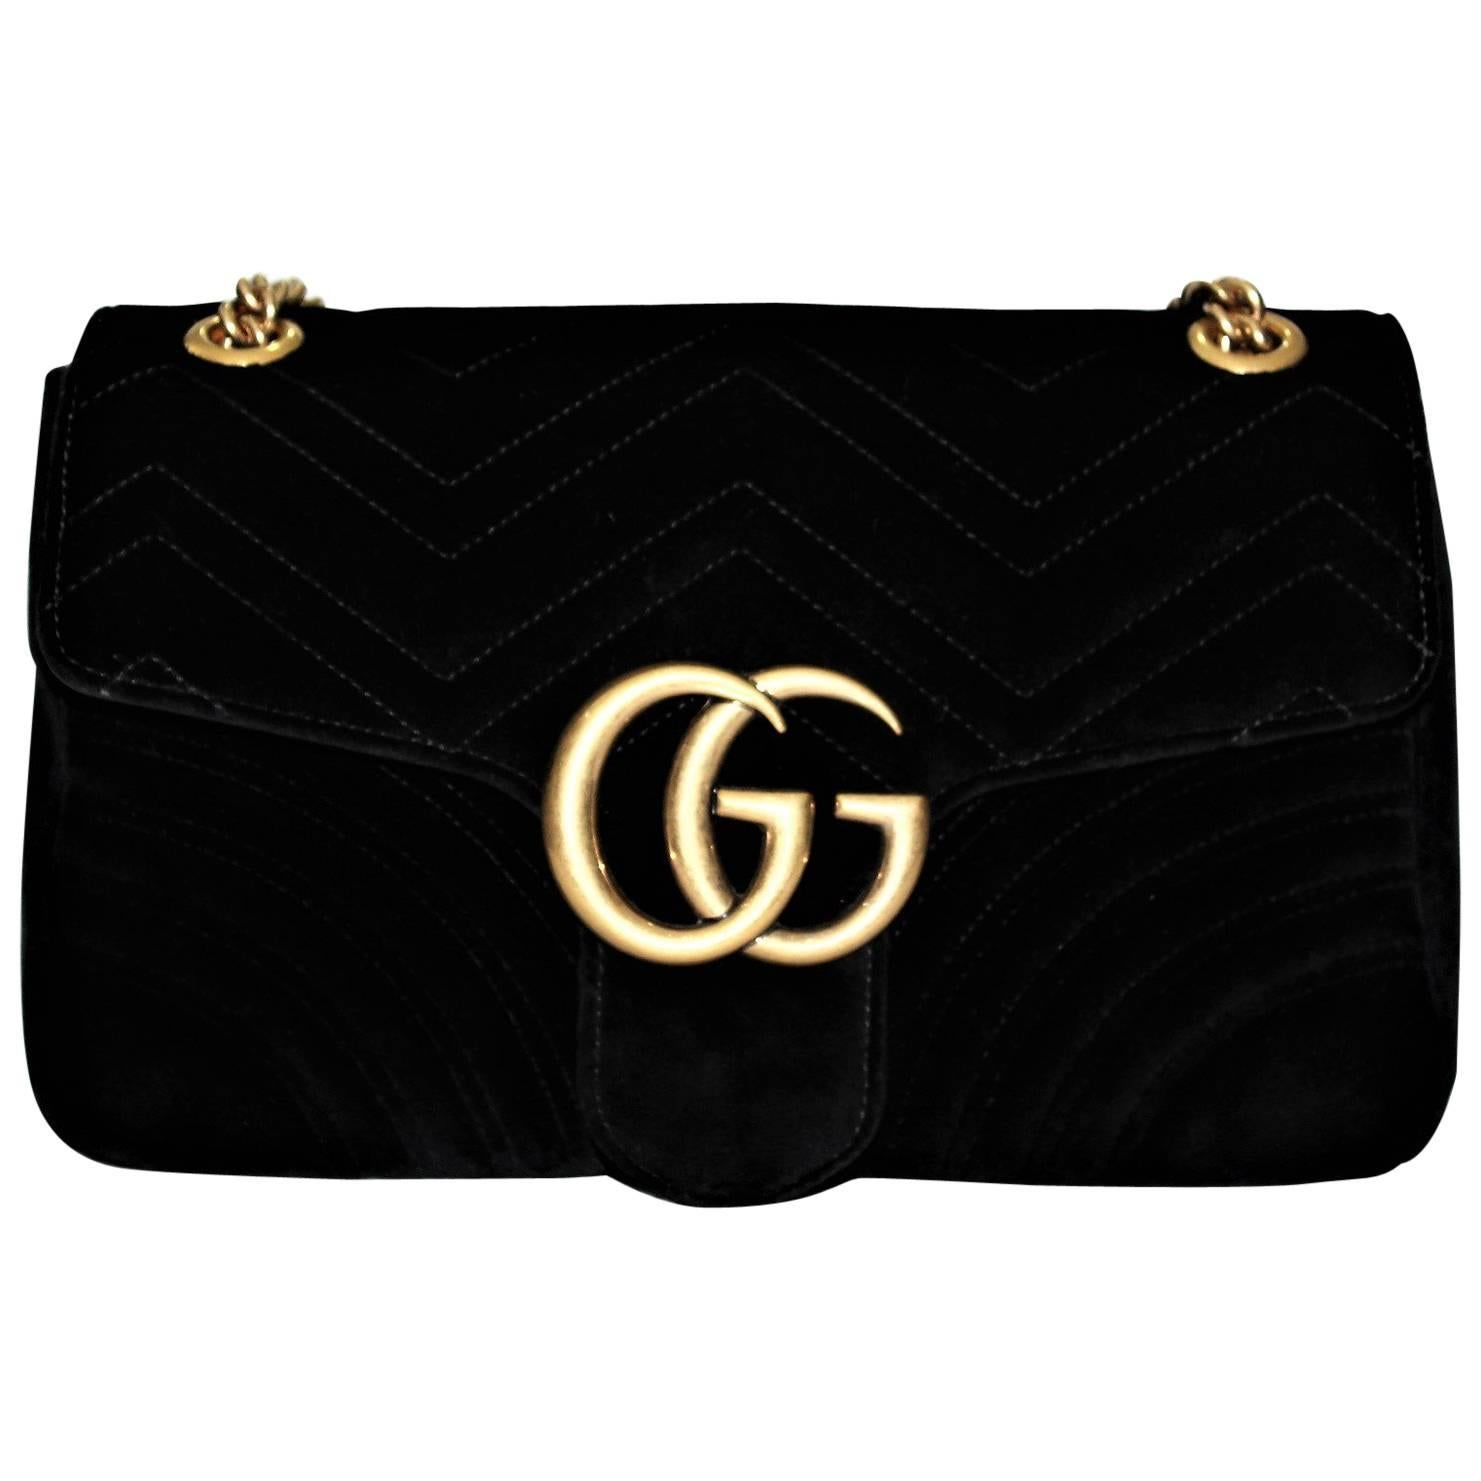 9dedb82f639f5 Gucci GG Marmont velvet shoulder bag at 1stdibs